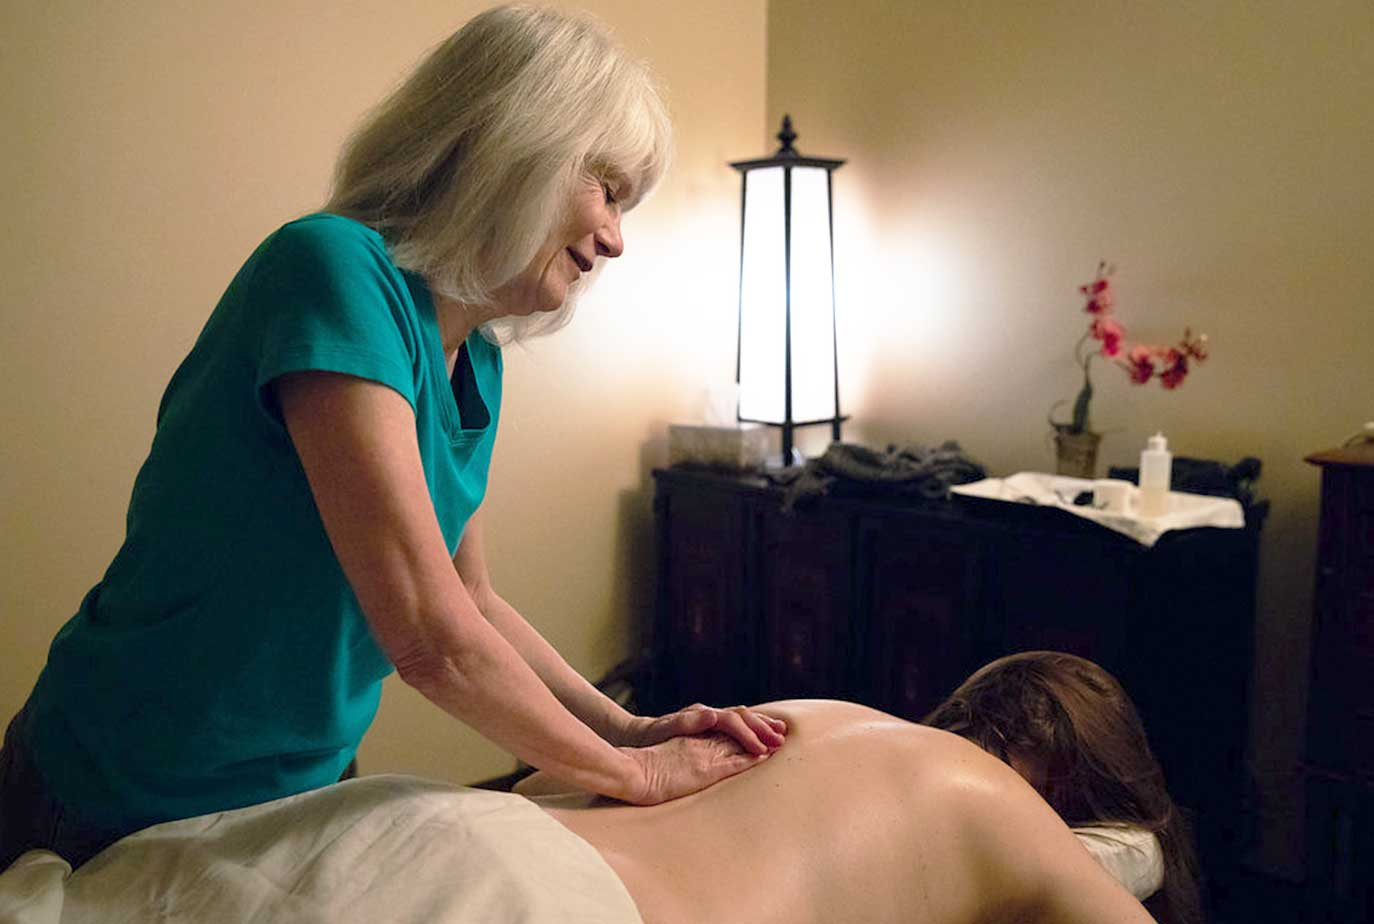 Woman in Blue scrubs massaging woman Massage Therapy Works Inc in Somerville, MA